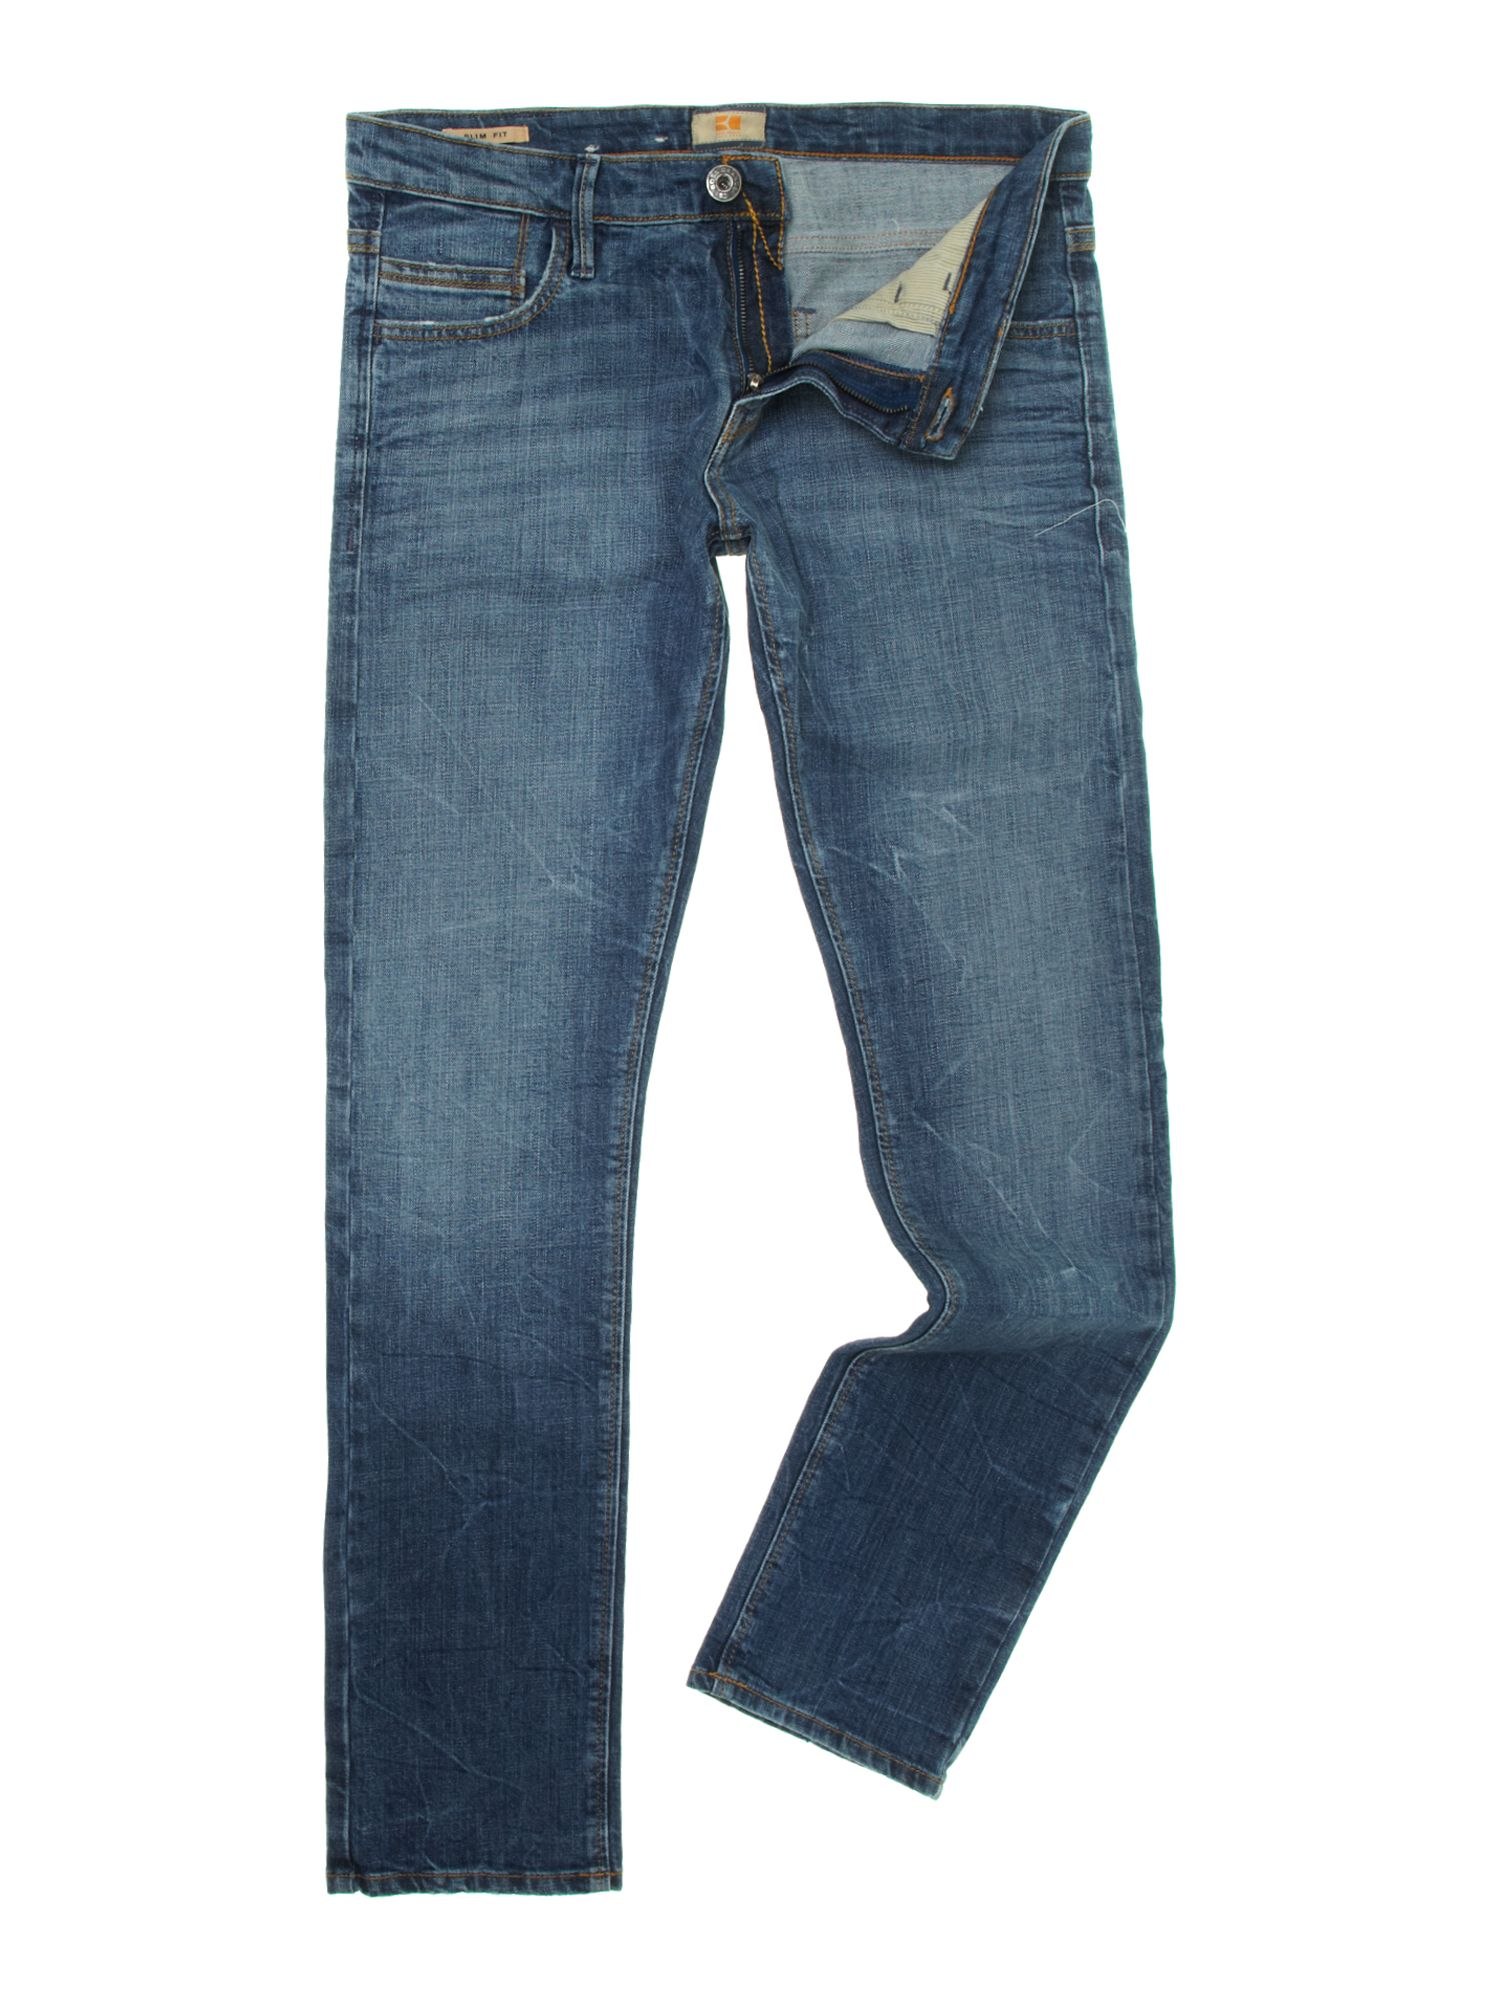 Orange 24 Barcelona mid wash straight fit jeans